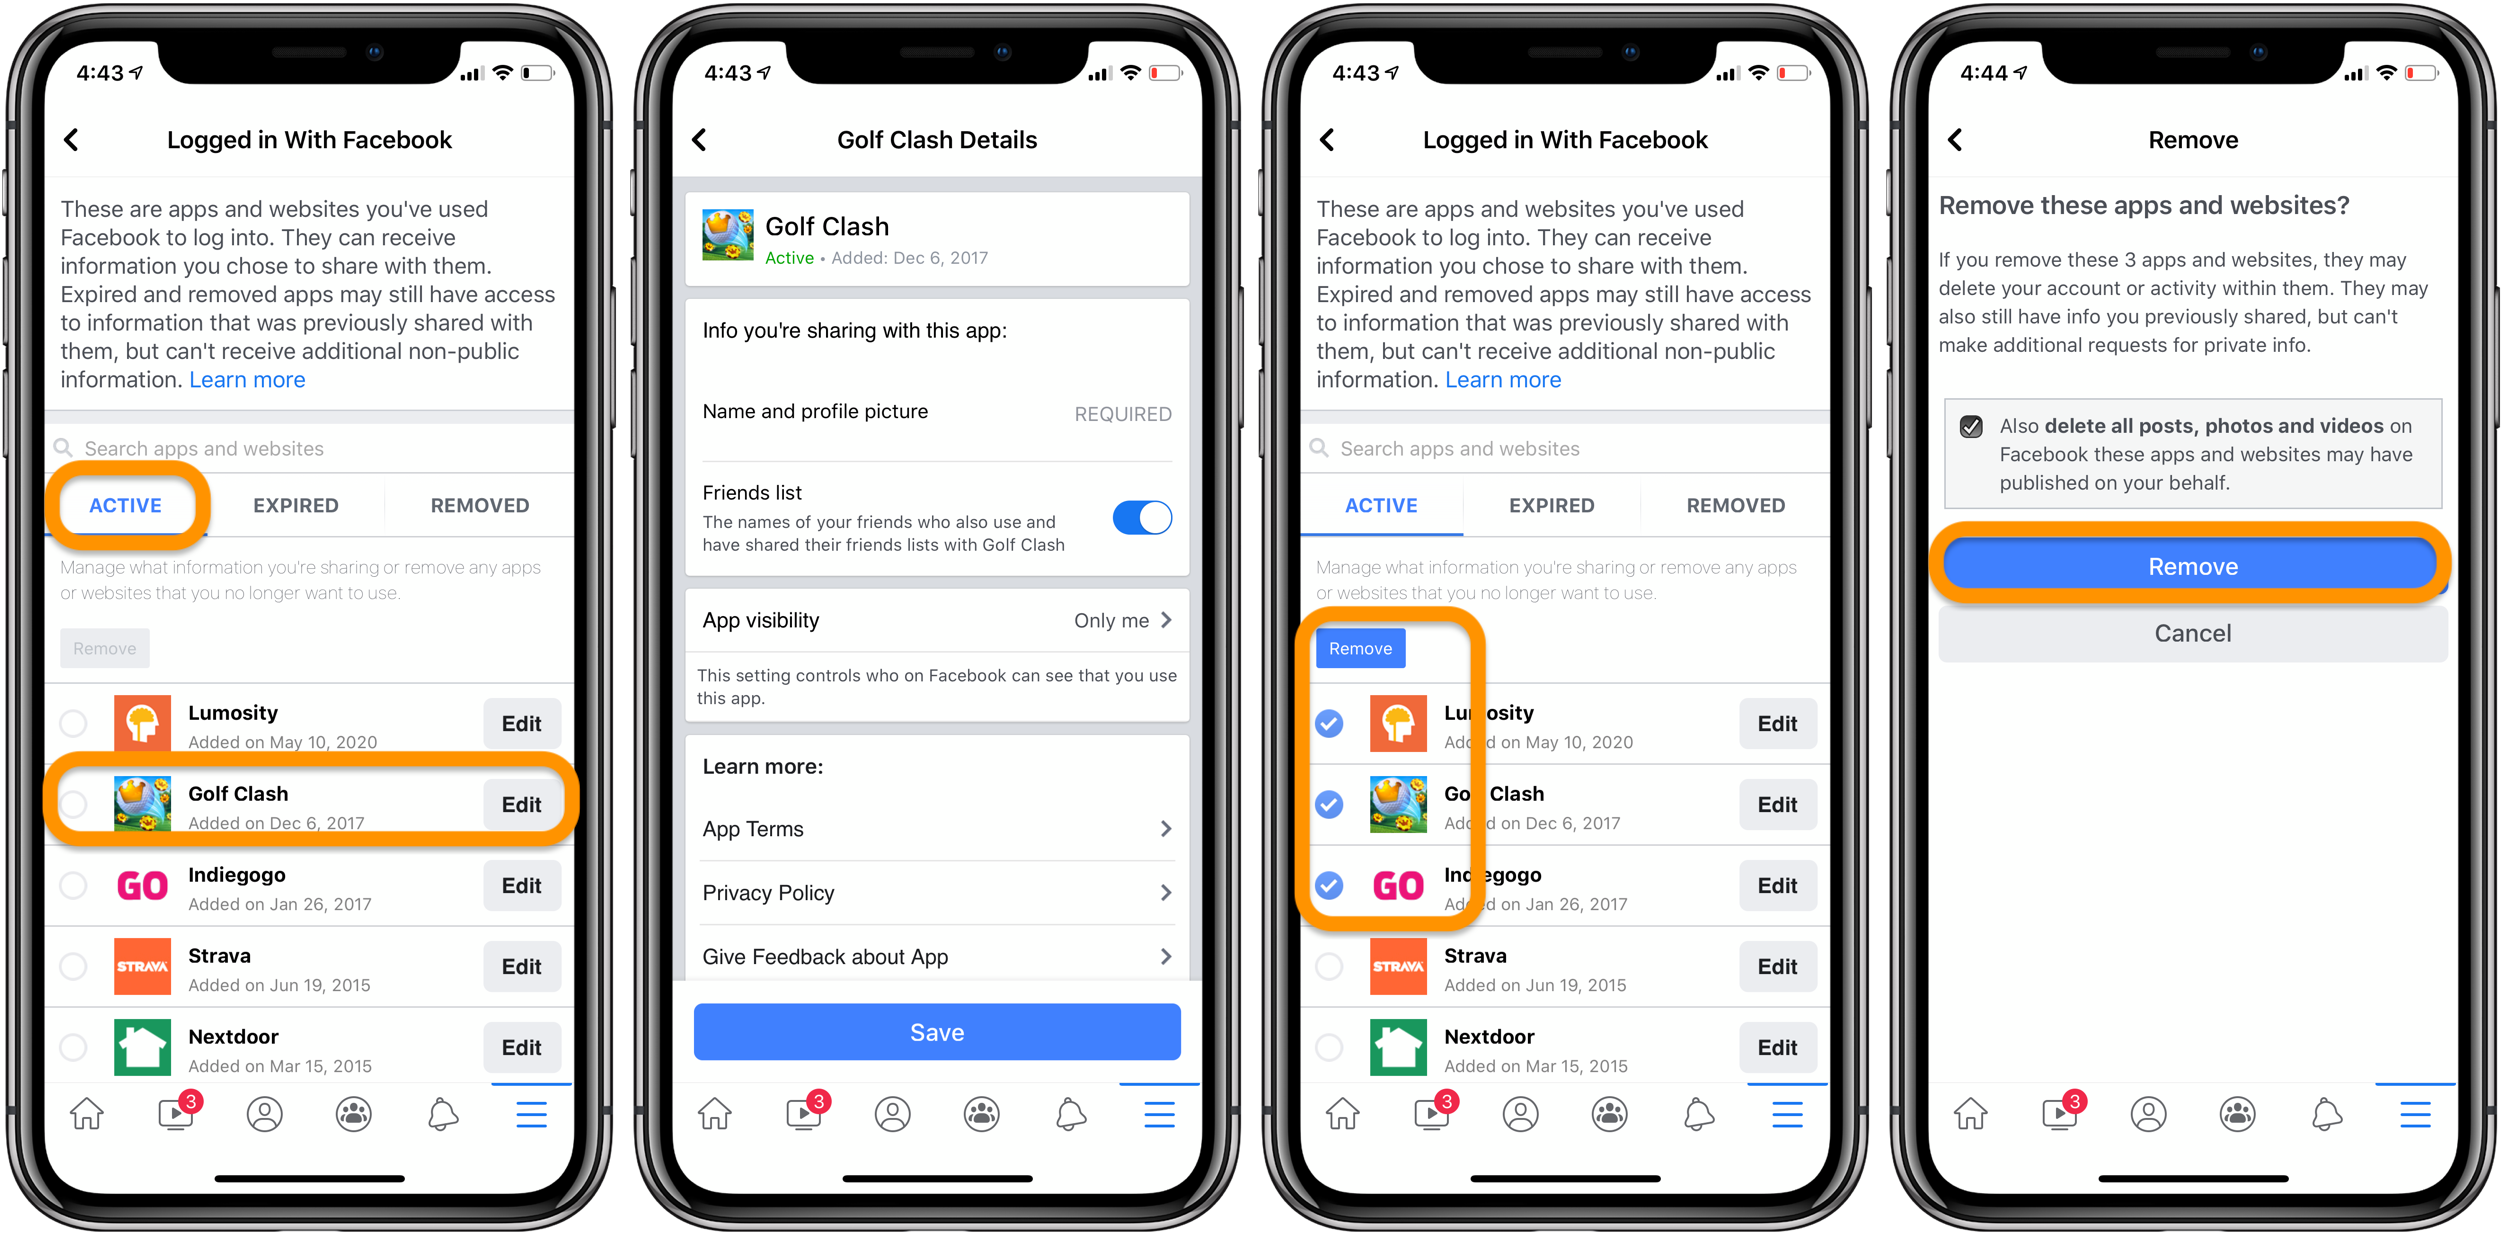 how to delete Logged in with Facebook apps and websites iPhone walkthrough